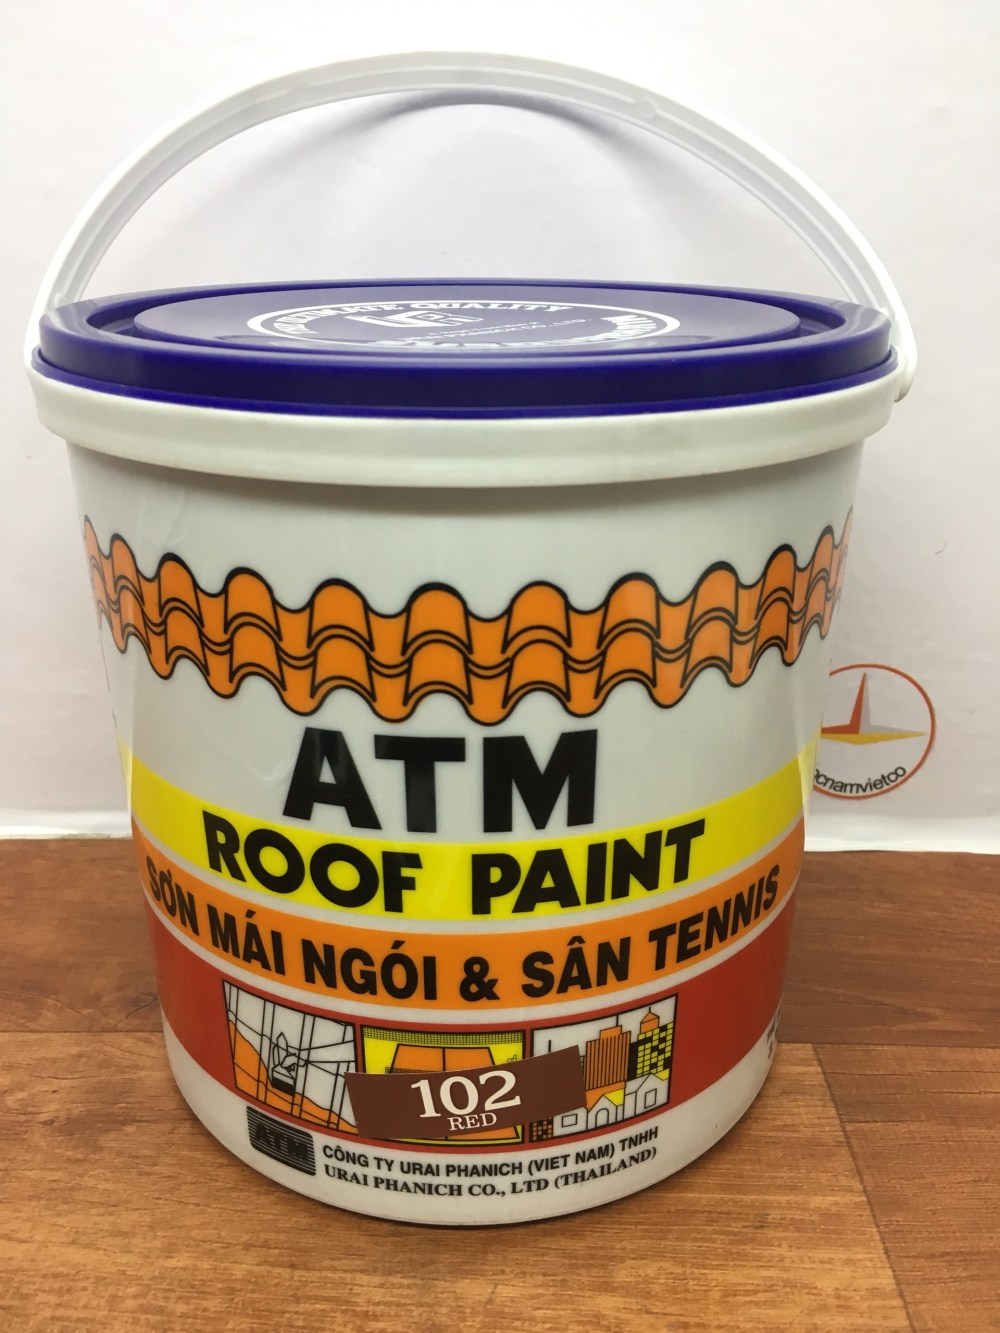 SON MAI NGOI & TENNIS ATM ROOF PAINT - (8)